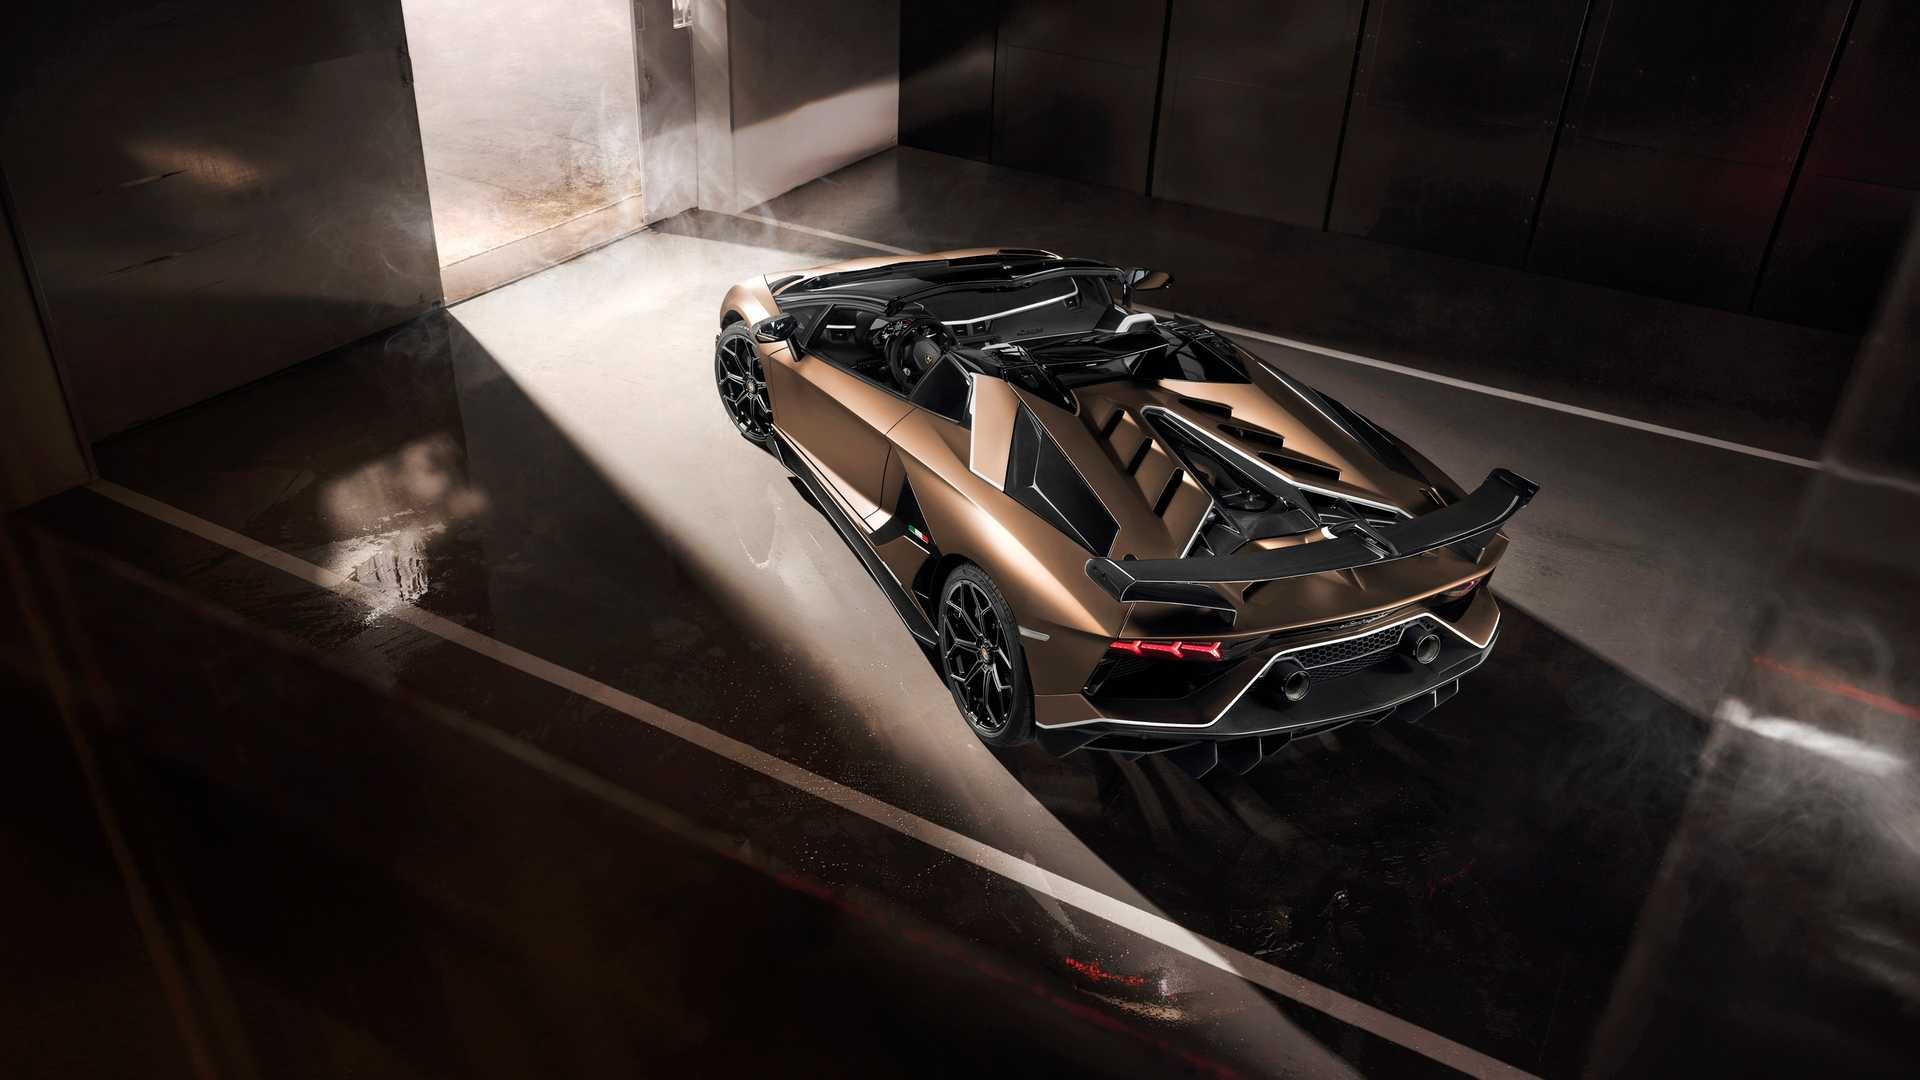 2020 Lamborghini Aventador SVJ Roadster Rear Wallpapers (4)